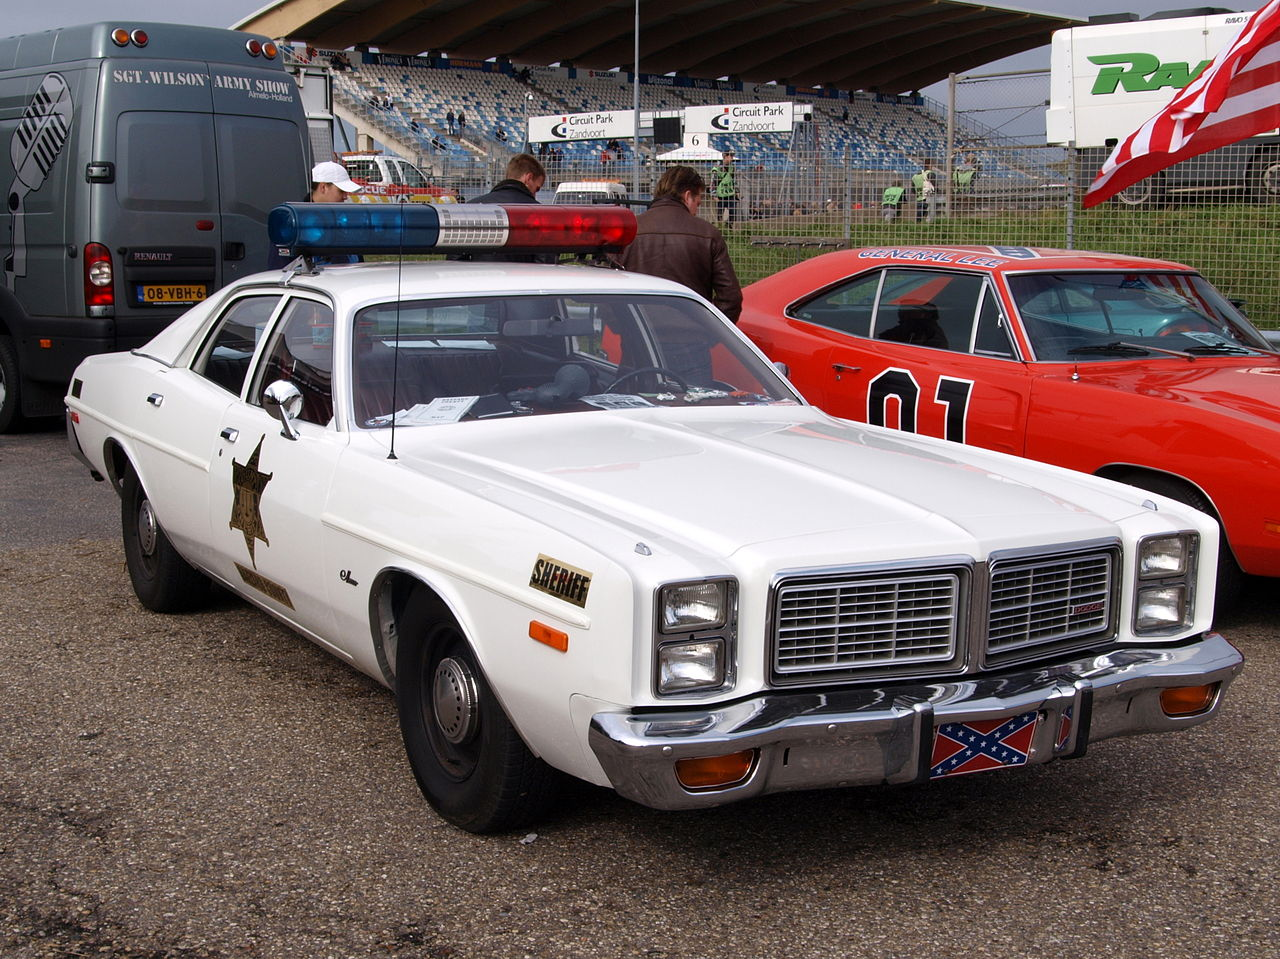 2 Person Car >> File:Nationale oldtimerdag Zandvoort 2010, Police car, Dodge Monaco pic2.JPG - Wikimedia Commons